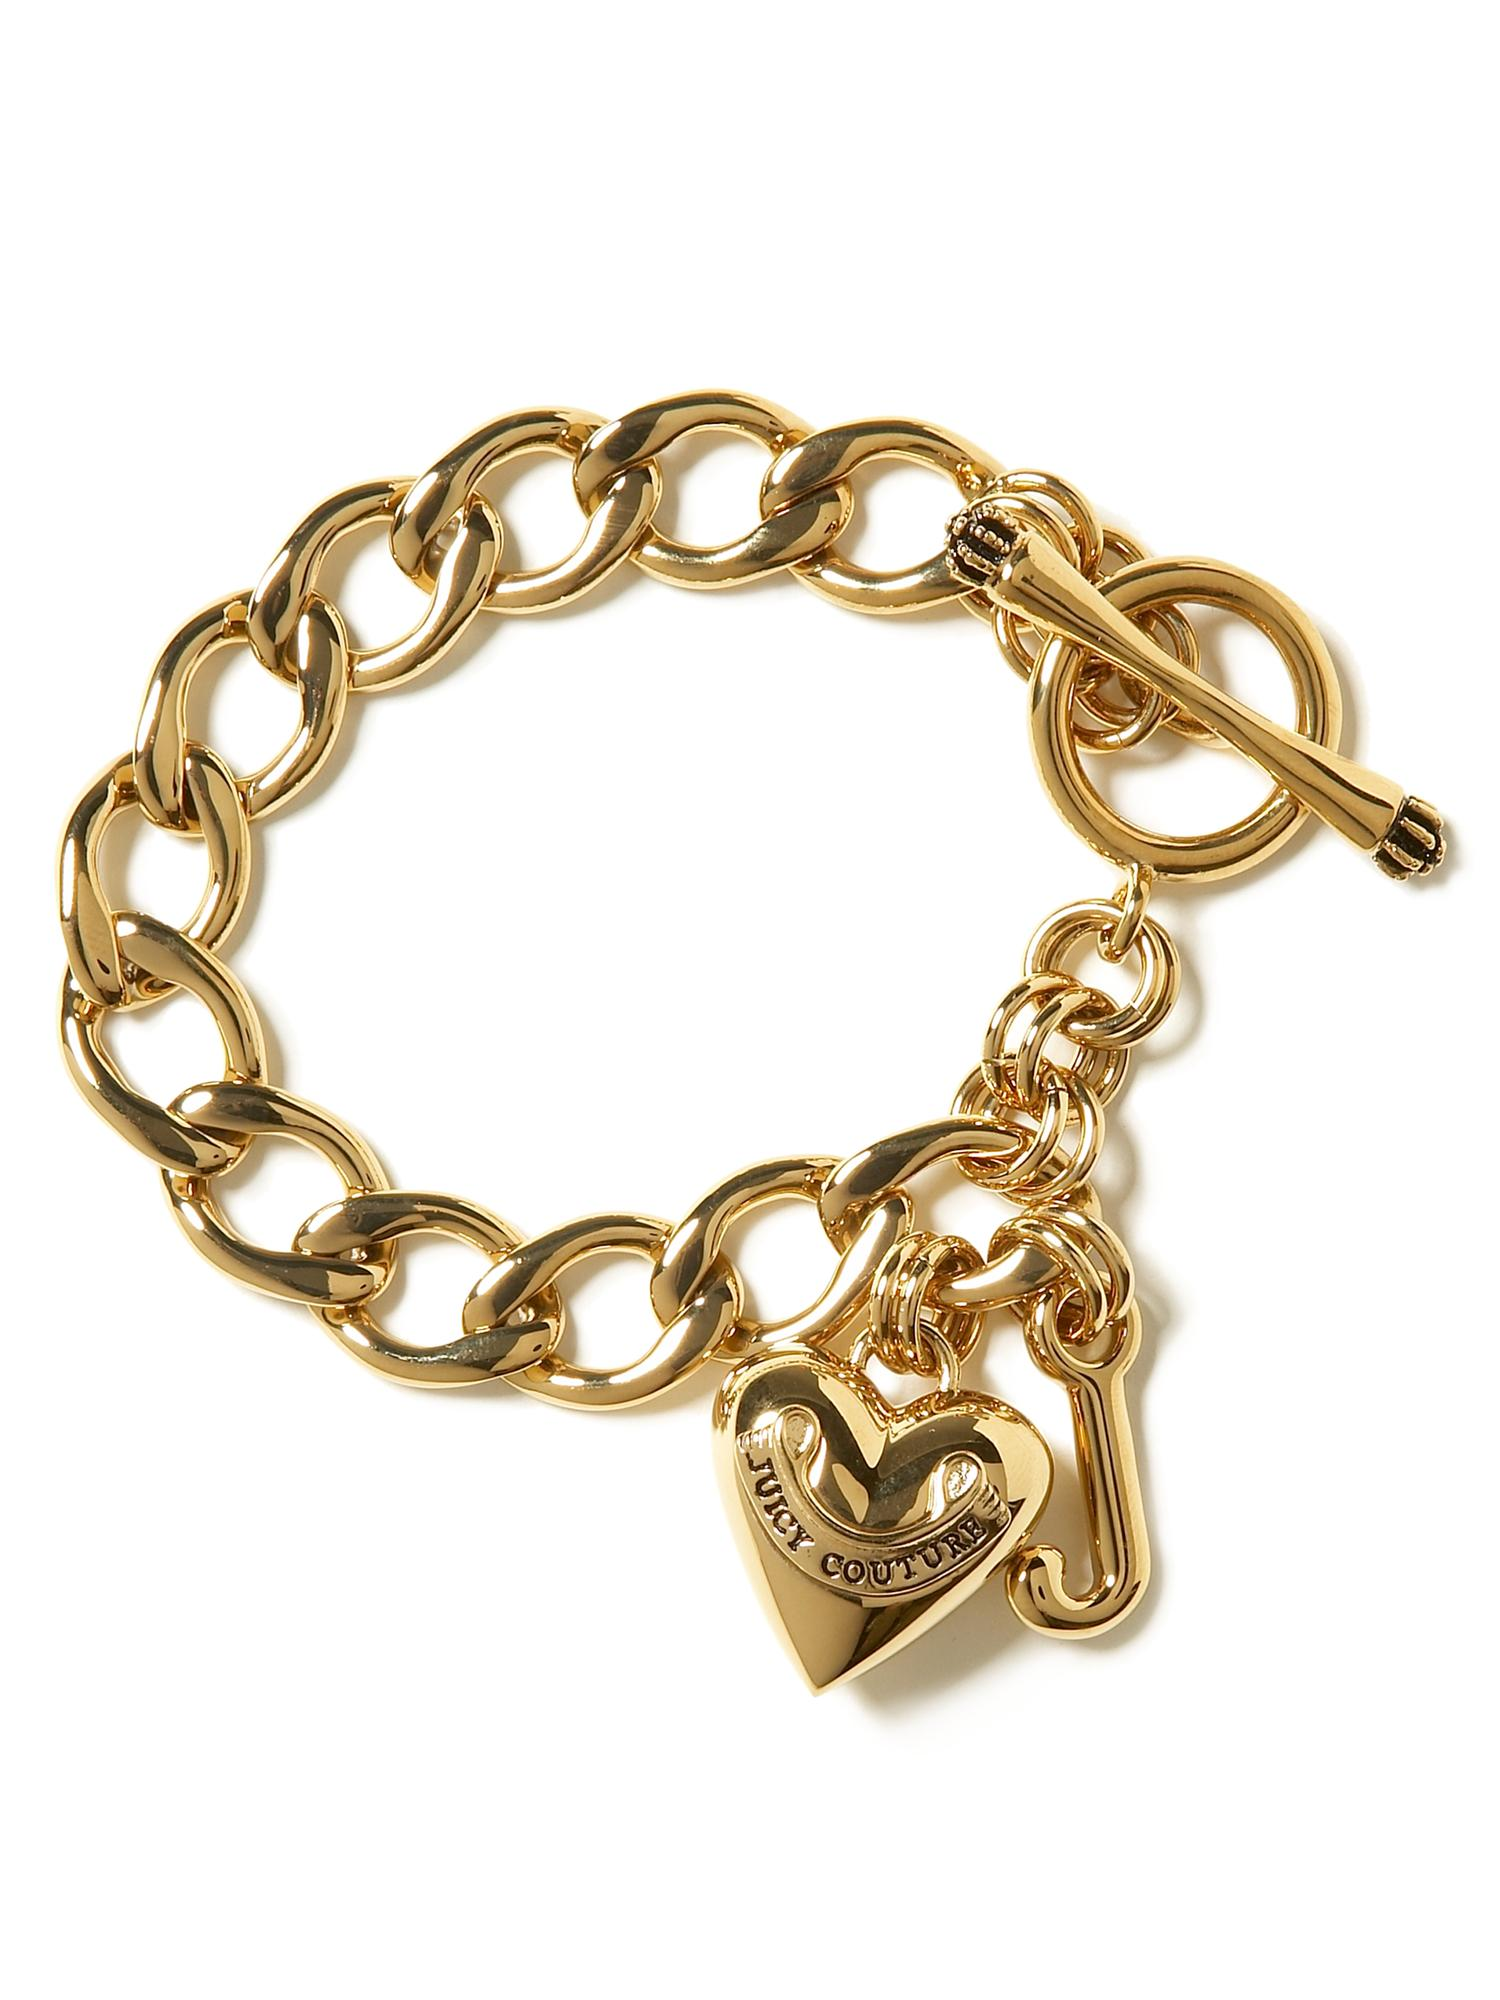 Juicy Couture Starter Charm Bracelet in Gold | Lyst